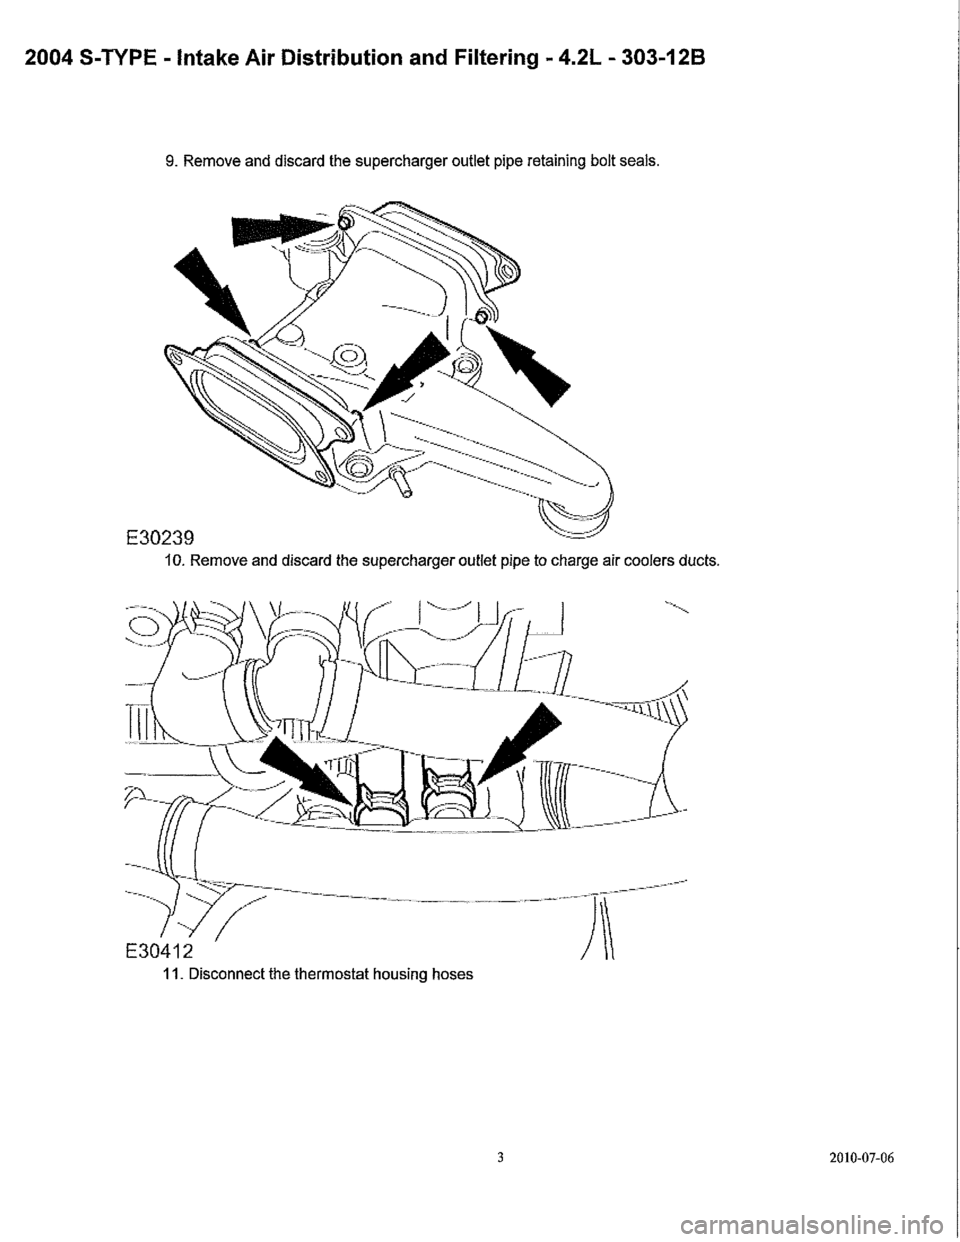 JAGUAR S TYPE 2005 1.G Supercharger Removal And Instalation Manual, Page 5